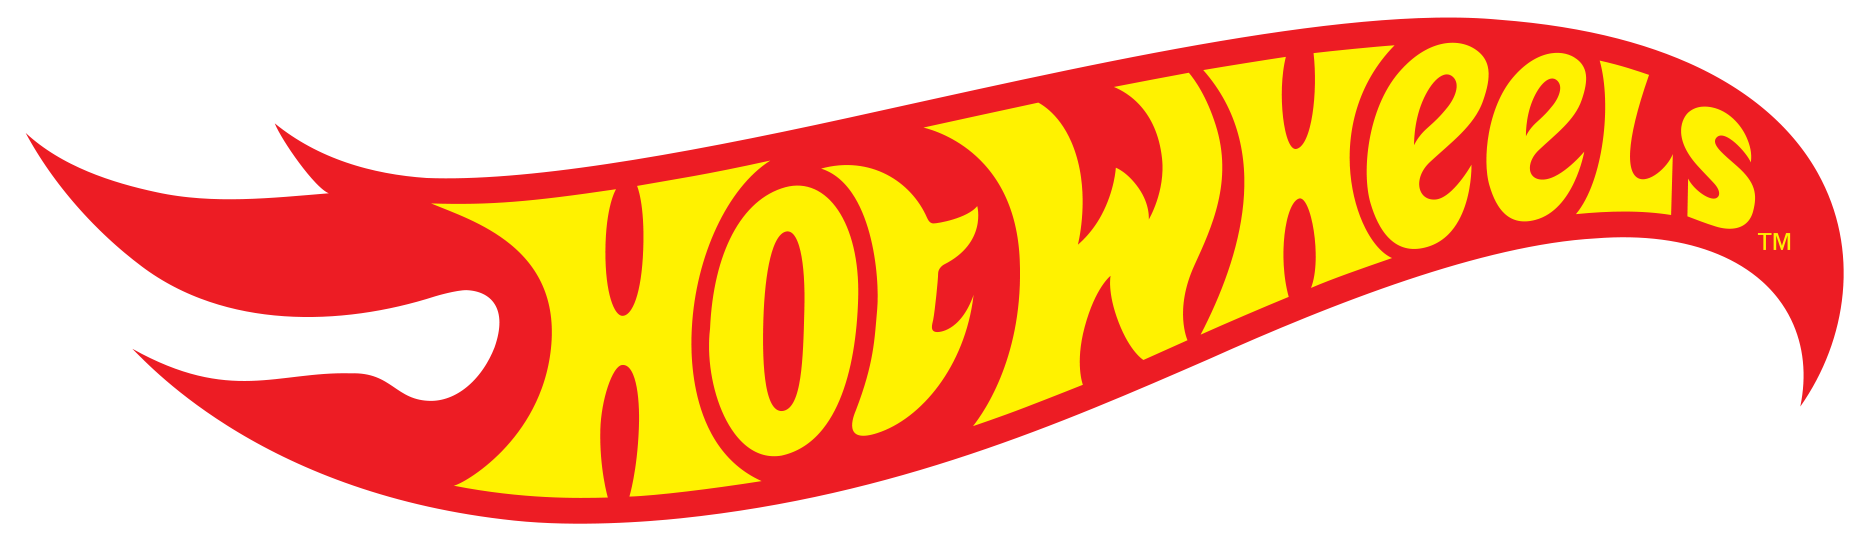 HOT WHEELS® CELEBRA SU 50º ANIVERSARIO